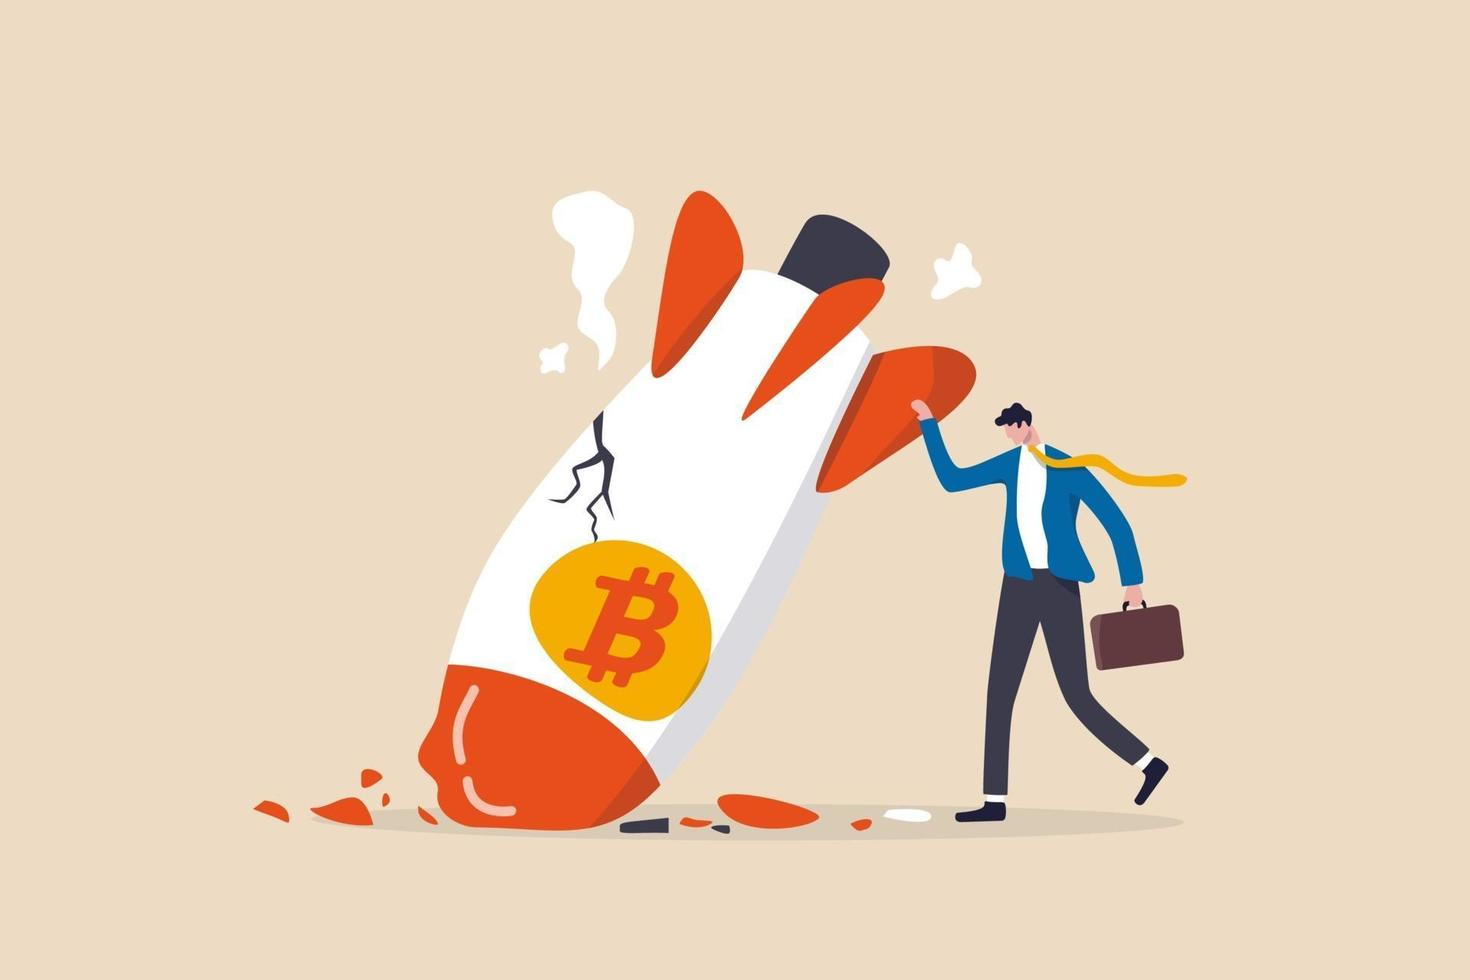 Bitcoin price collapse, crypto currency volatility price roaring fast and fall down causing investor huge loss concept vector